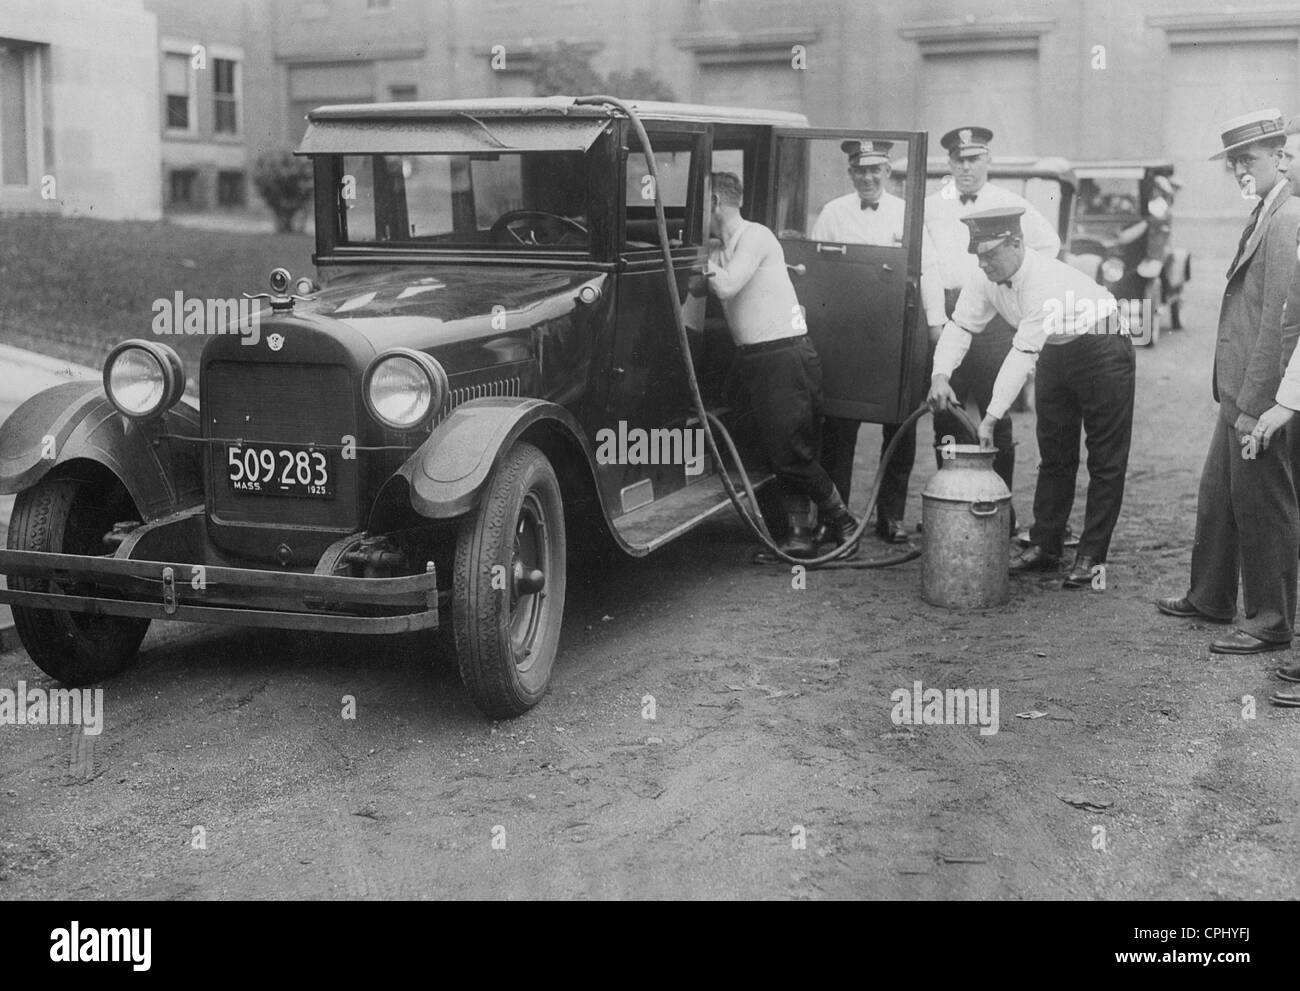 Alcohol smuggling during the prohibition in the USA - Stock Image